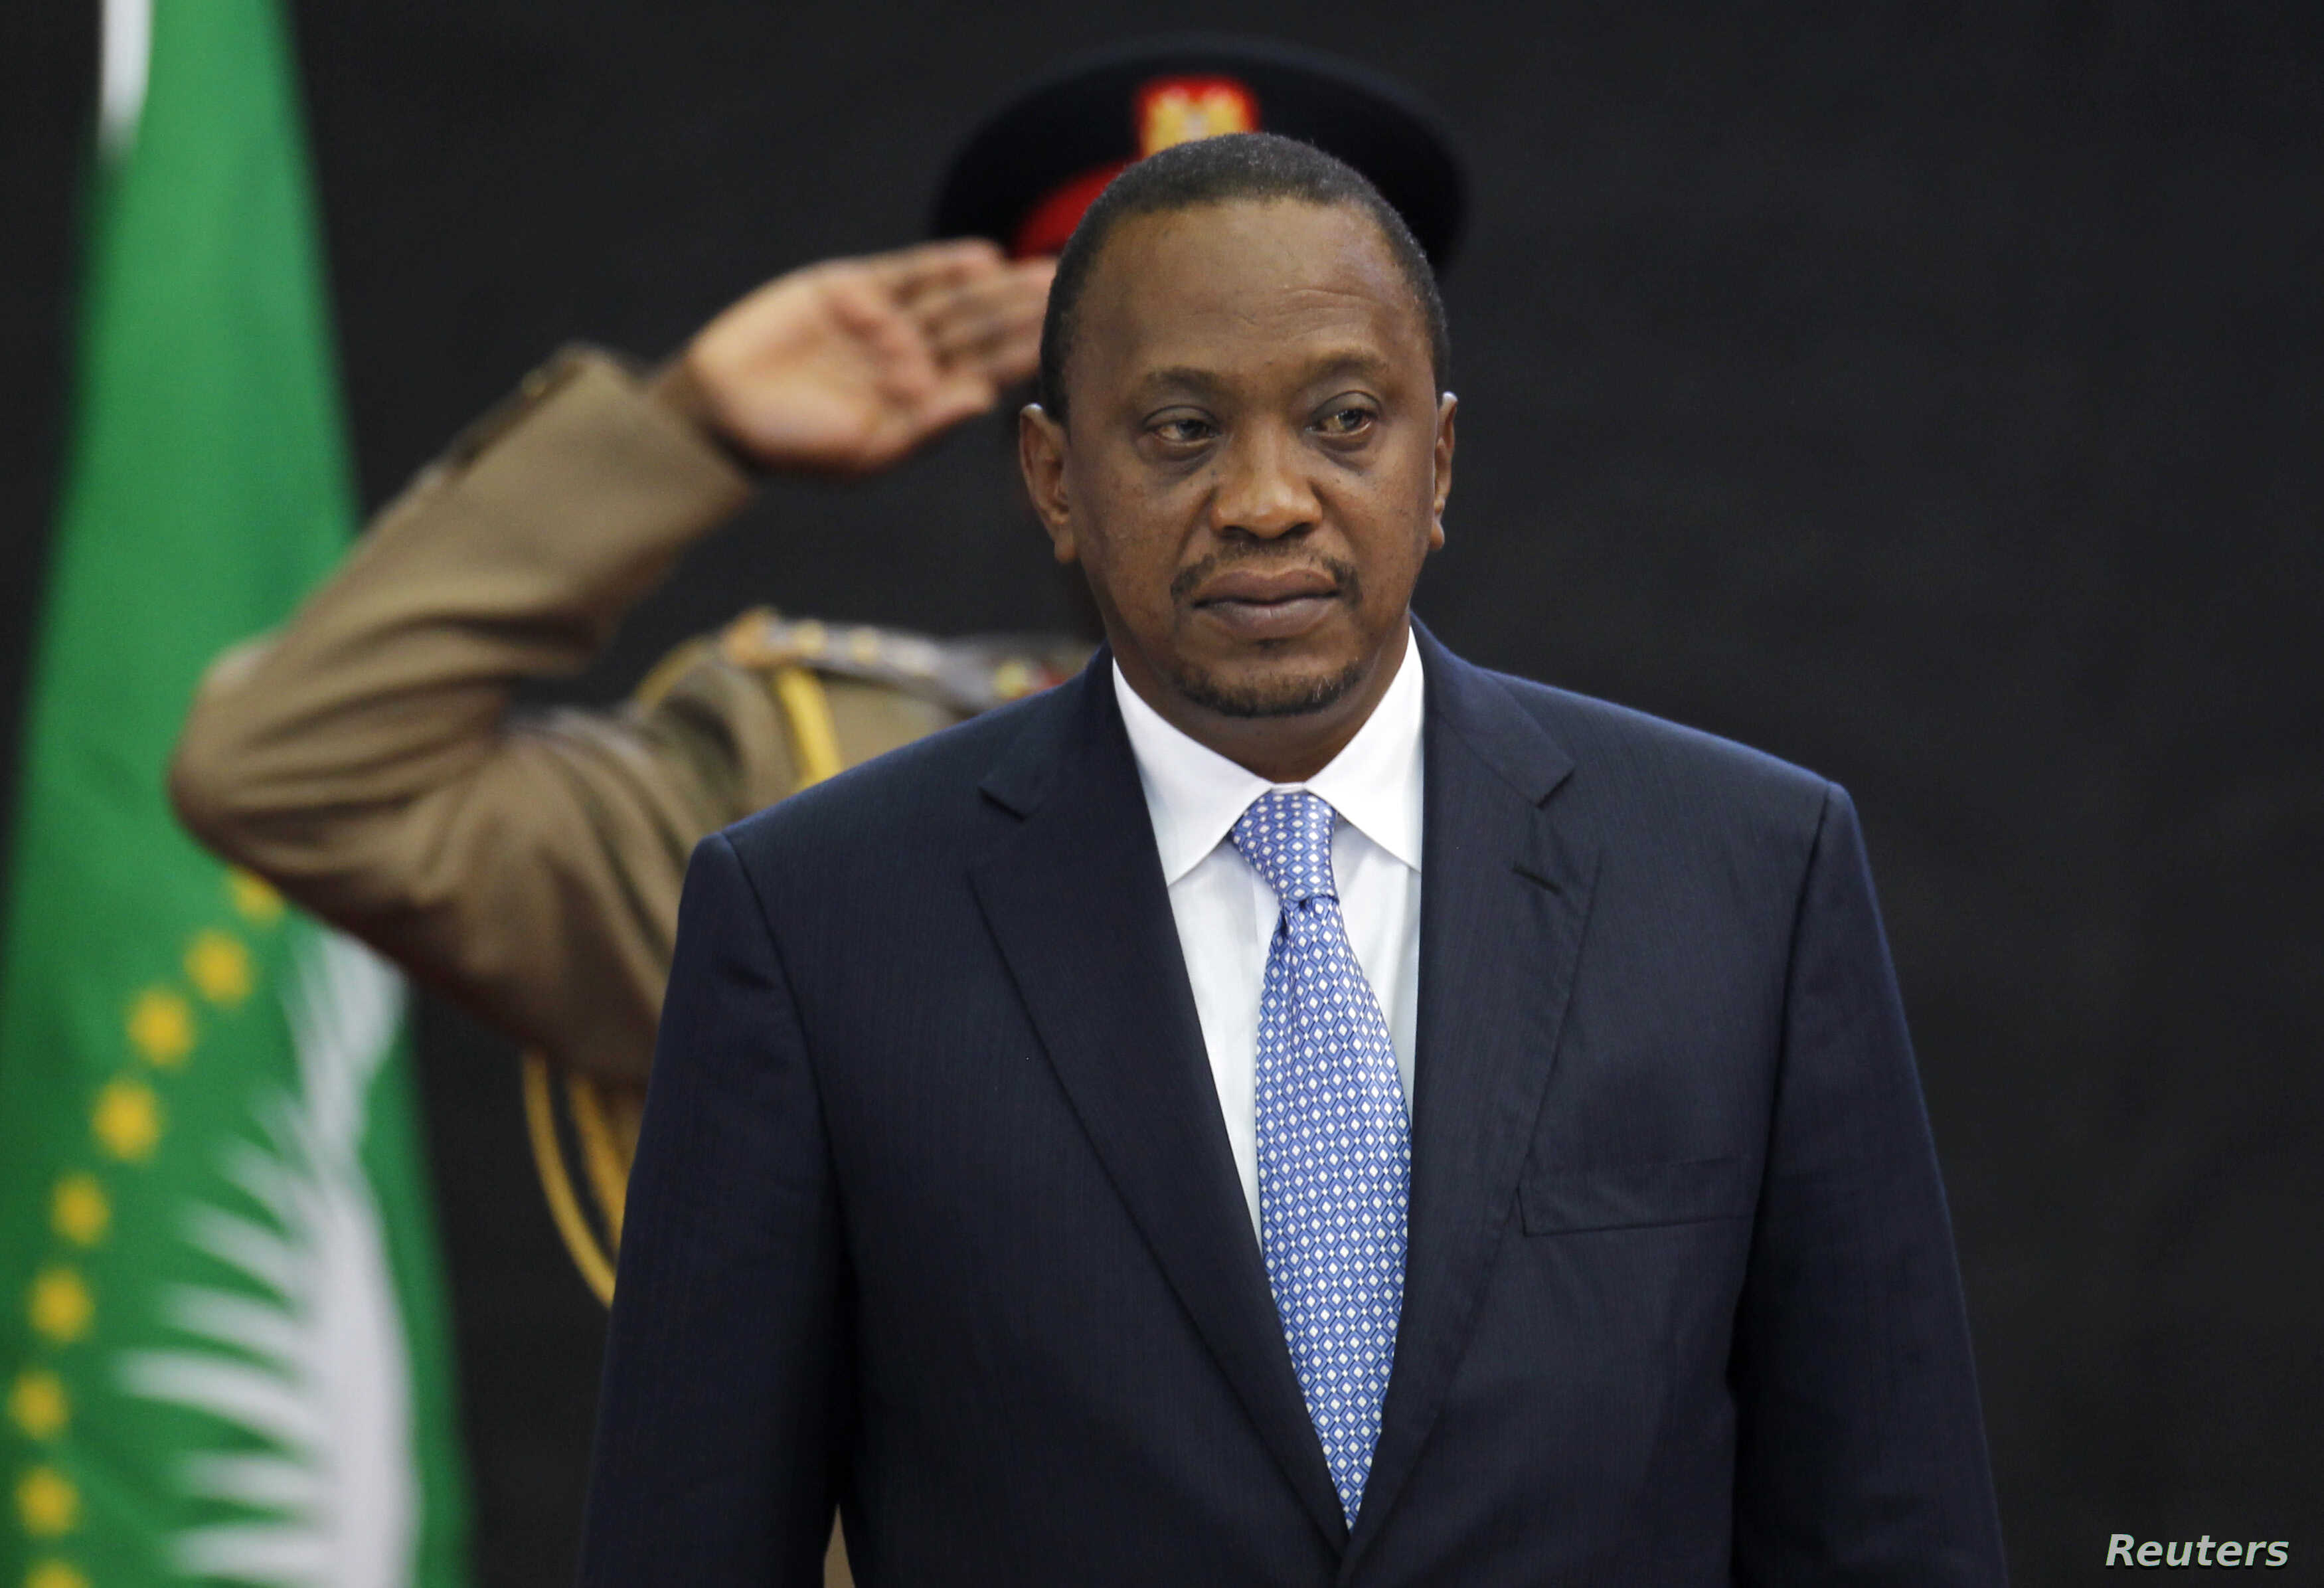 Kenya President to Transfer Power While at ICC | Voice of America - English